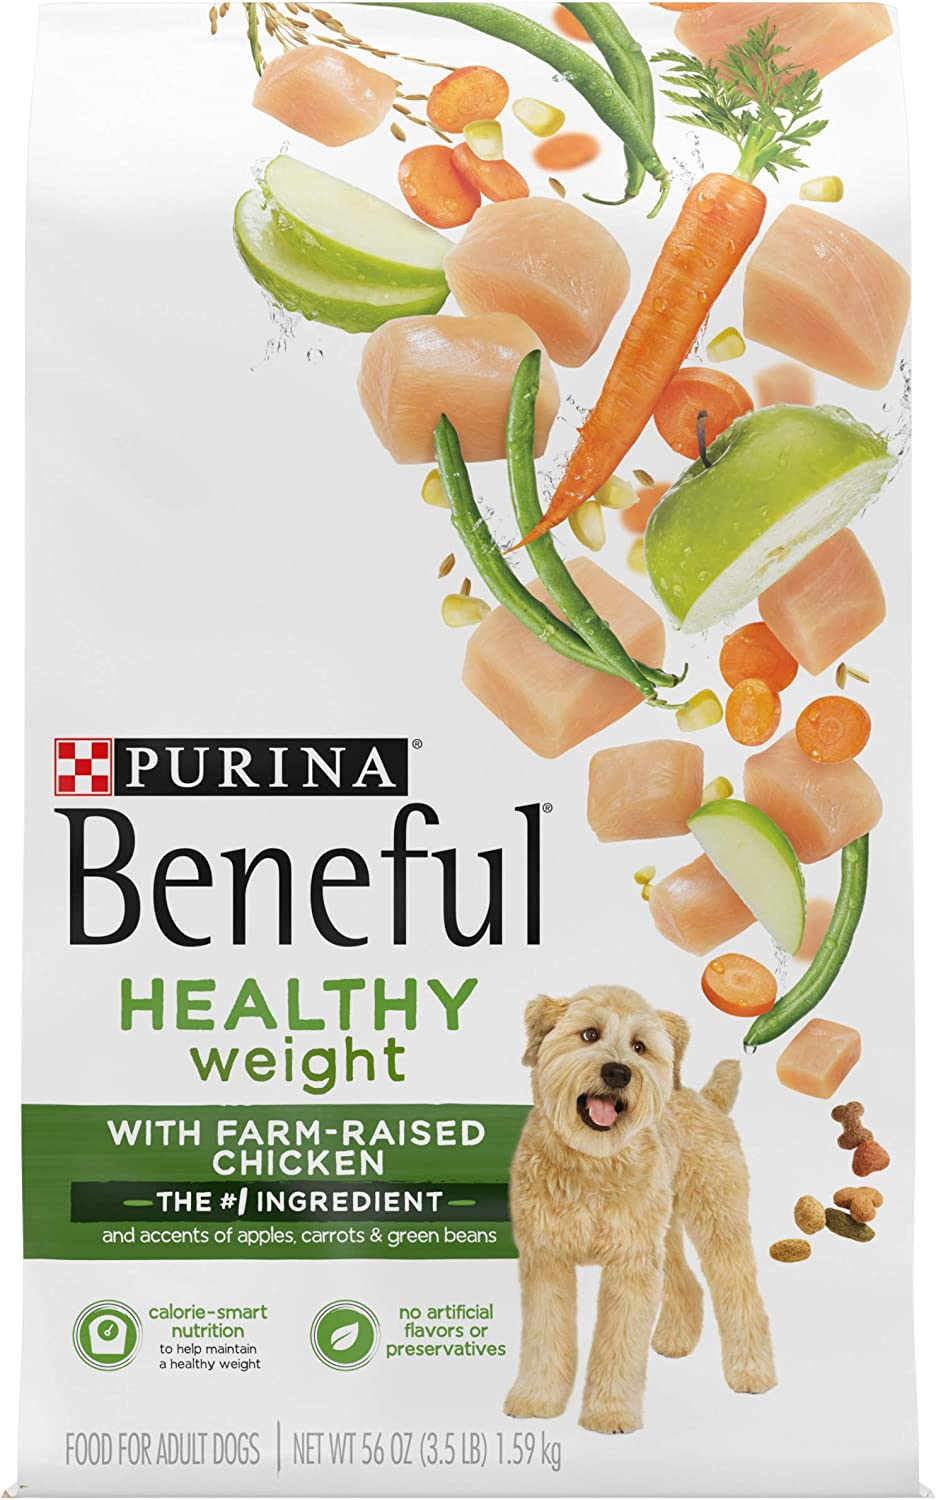 Purina Beneful Healthy Weight Dry Dog Food, Healthy Weight With Real Chicken - (4) 3.5 lb. Bags